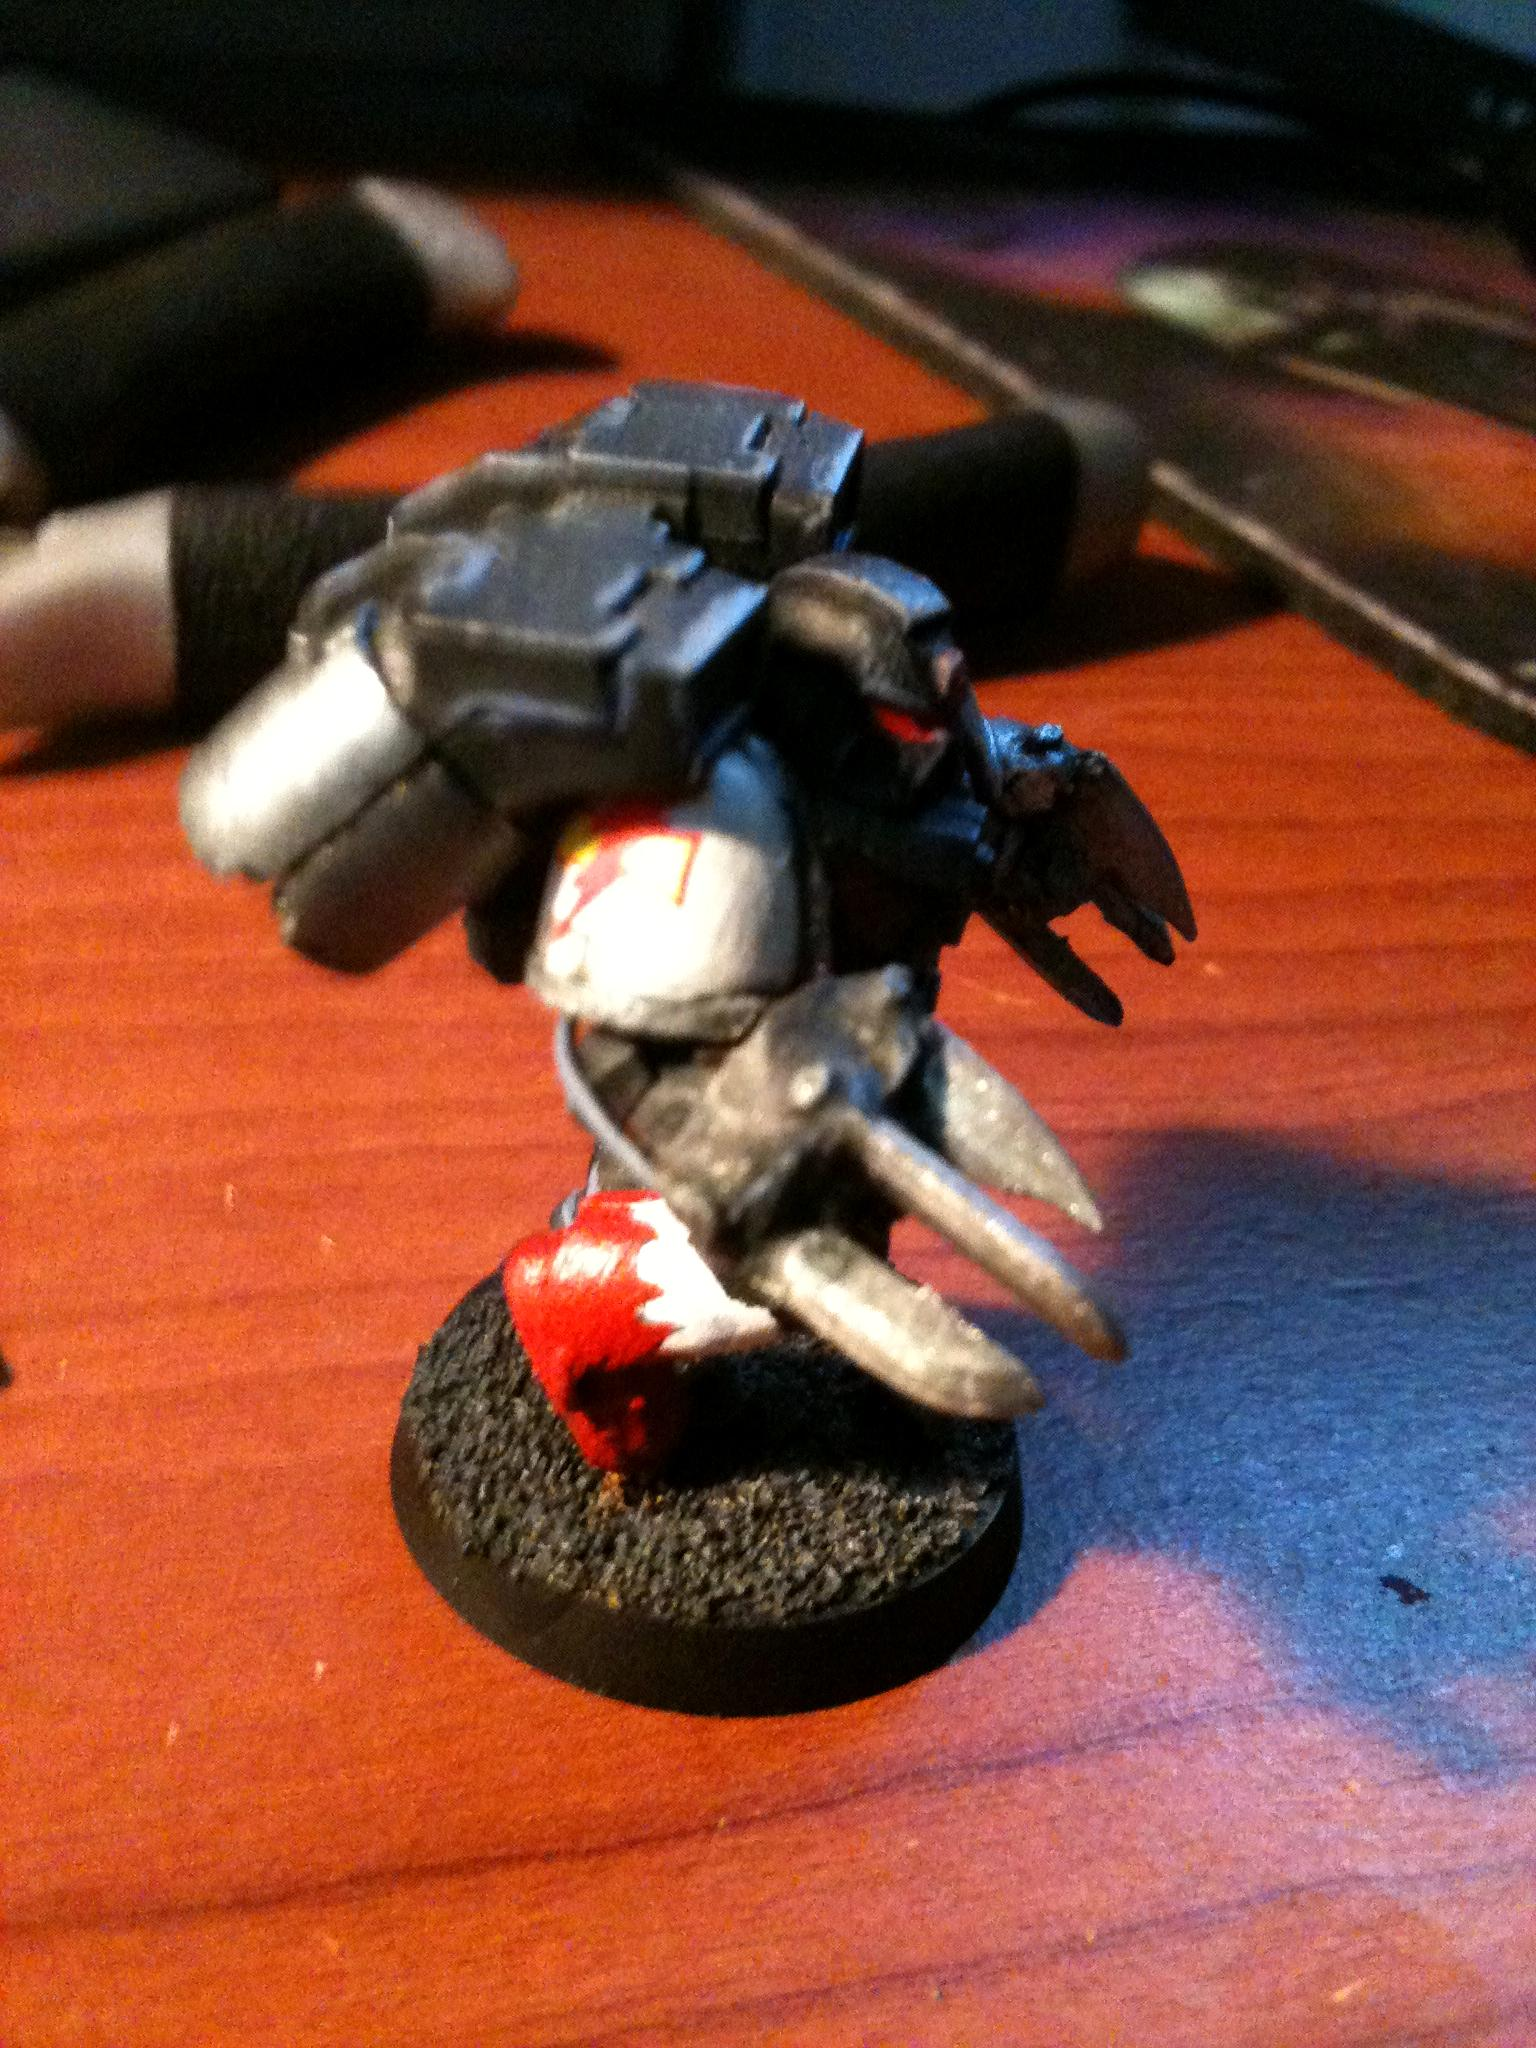 Assault Marines, Conversion, Deathwatch, Jump Pack, Lighning Claws, Power Armor, Space Marines, Wh40, White Scars